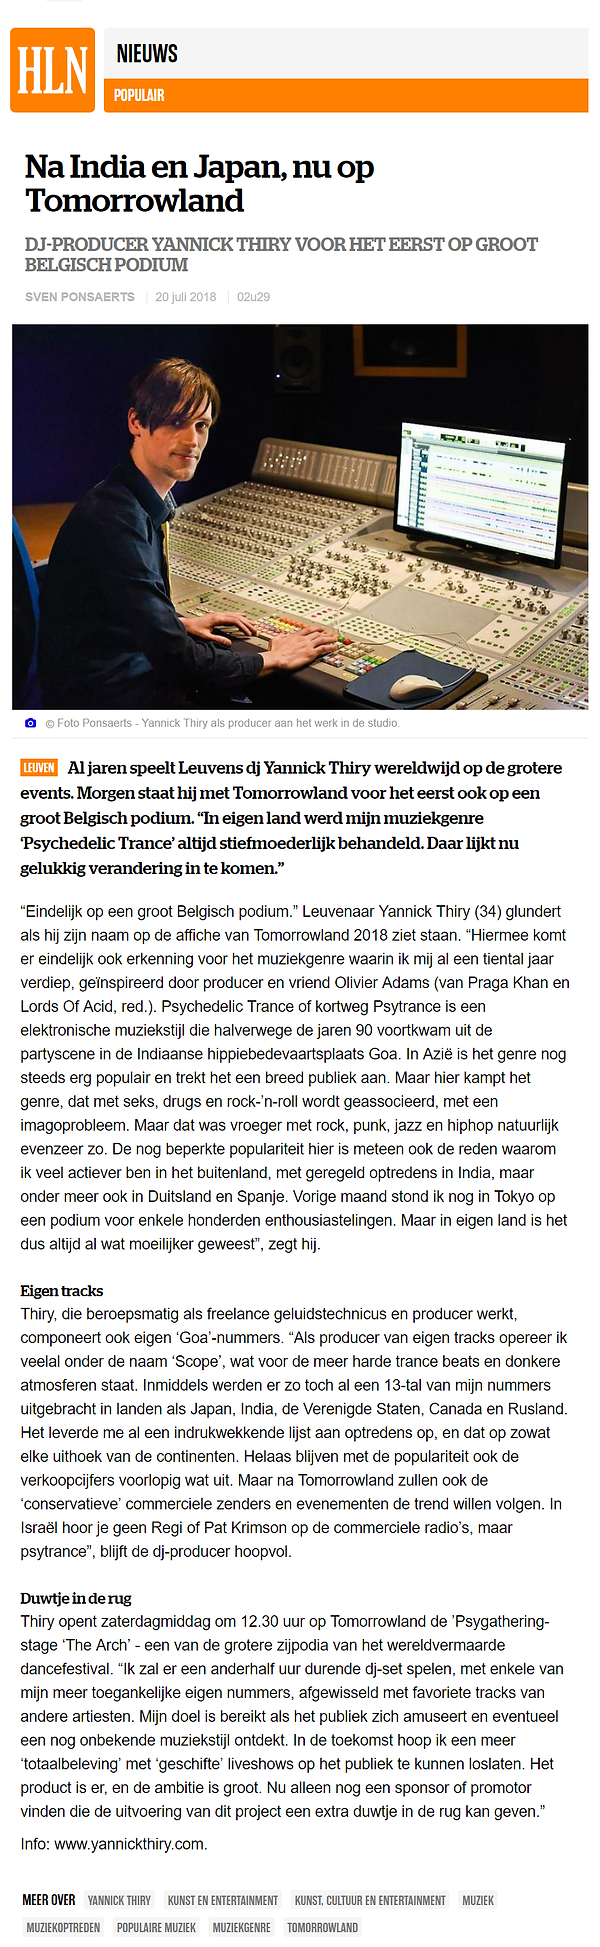 HLN 2018.png